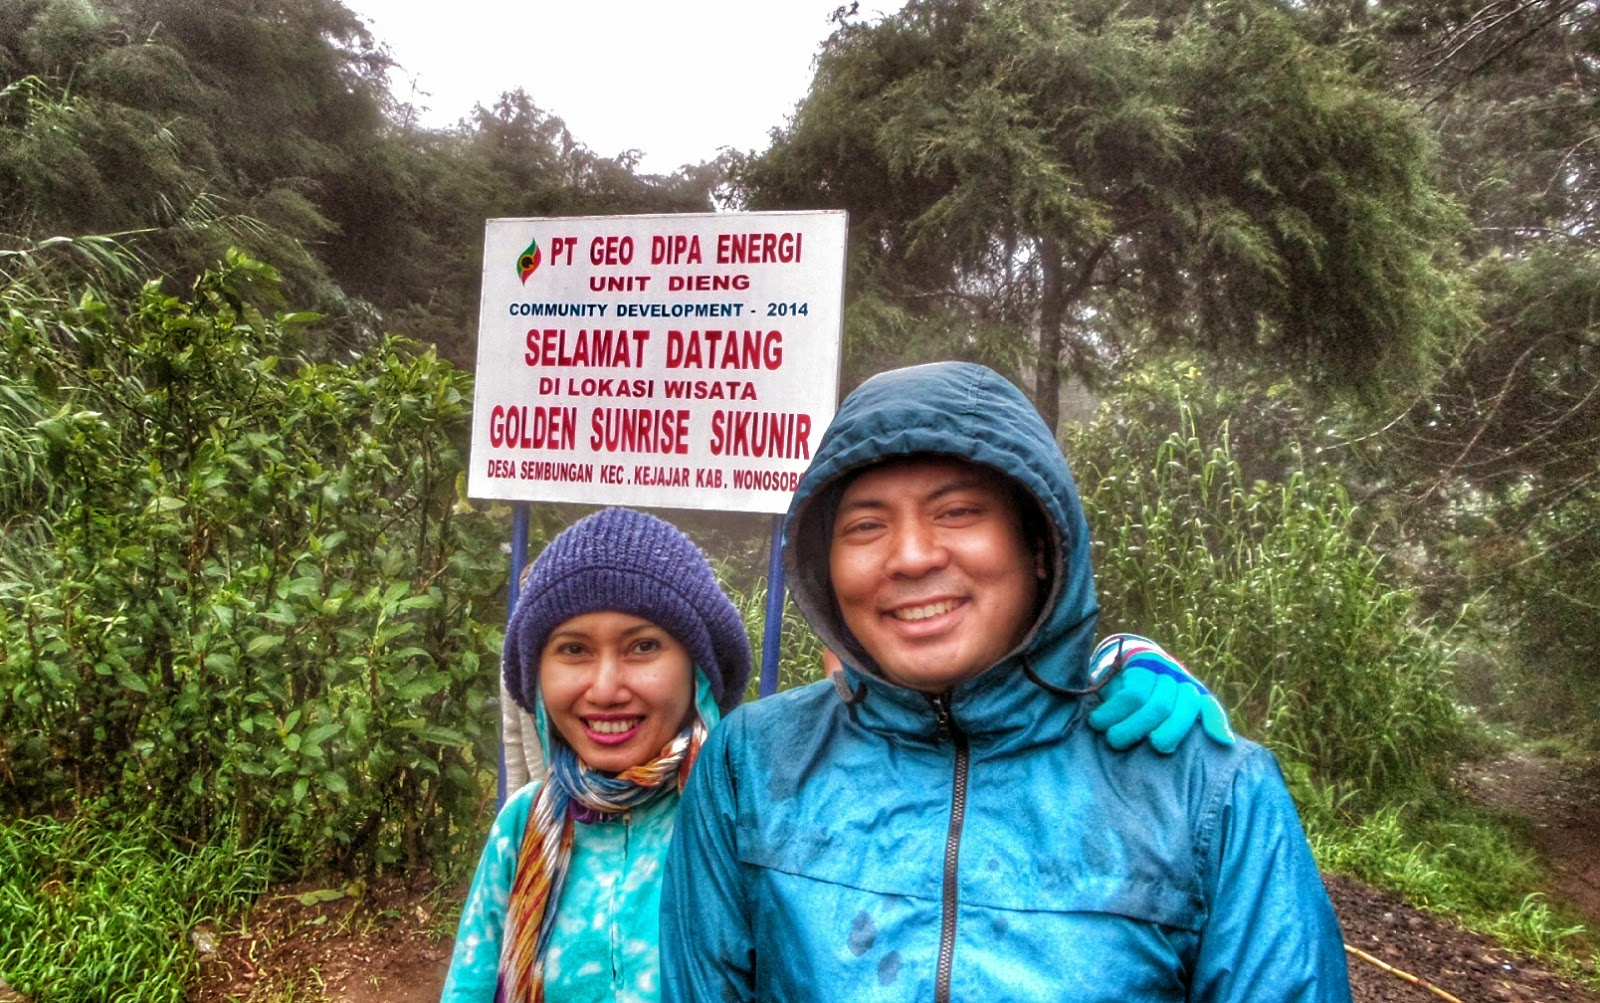 Dieng Trip Sedih Gagal Sunrise Di Bukit Sikunir The Traveling Cow